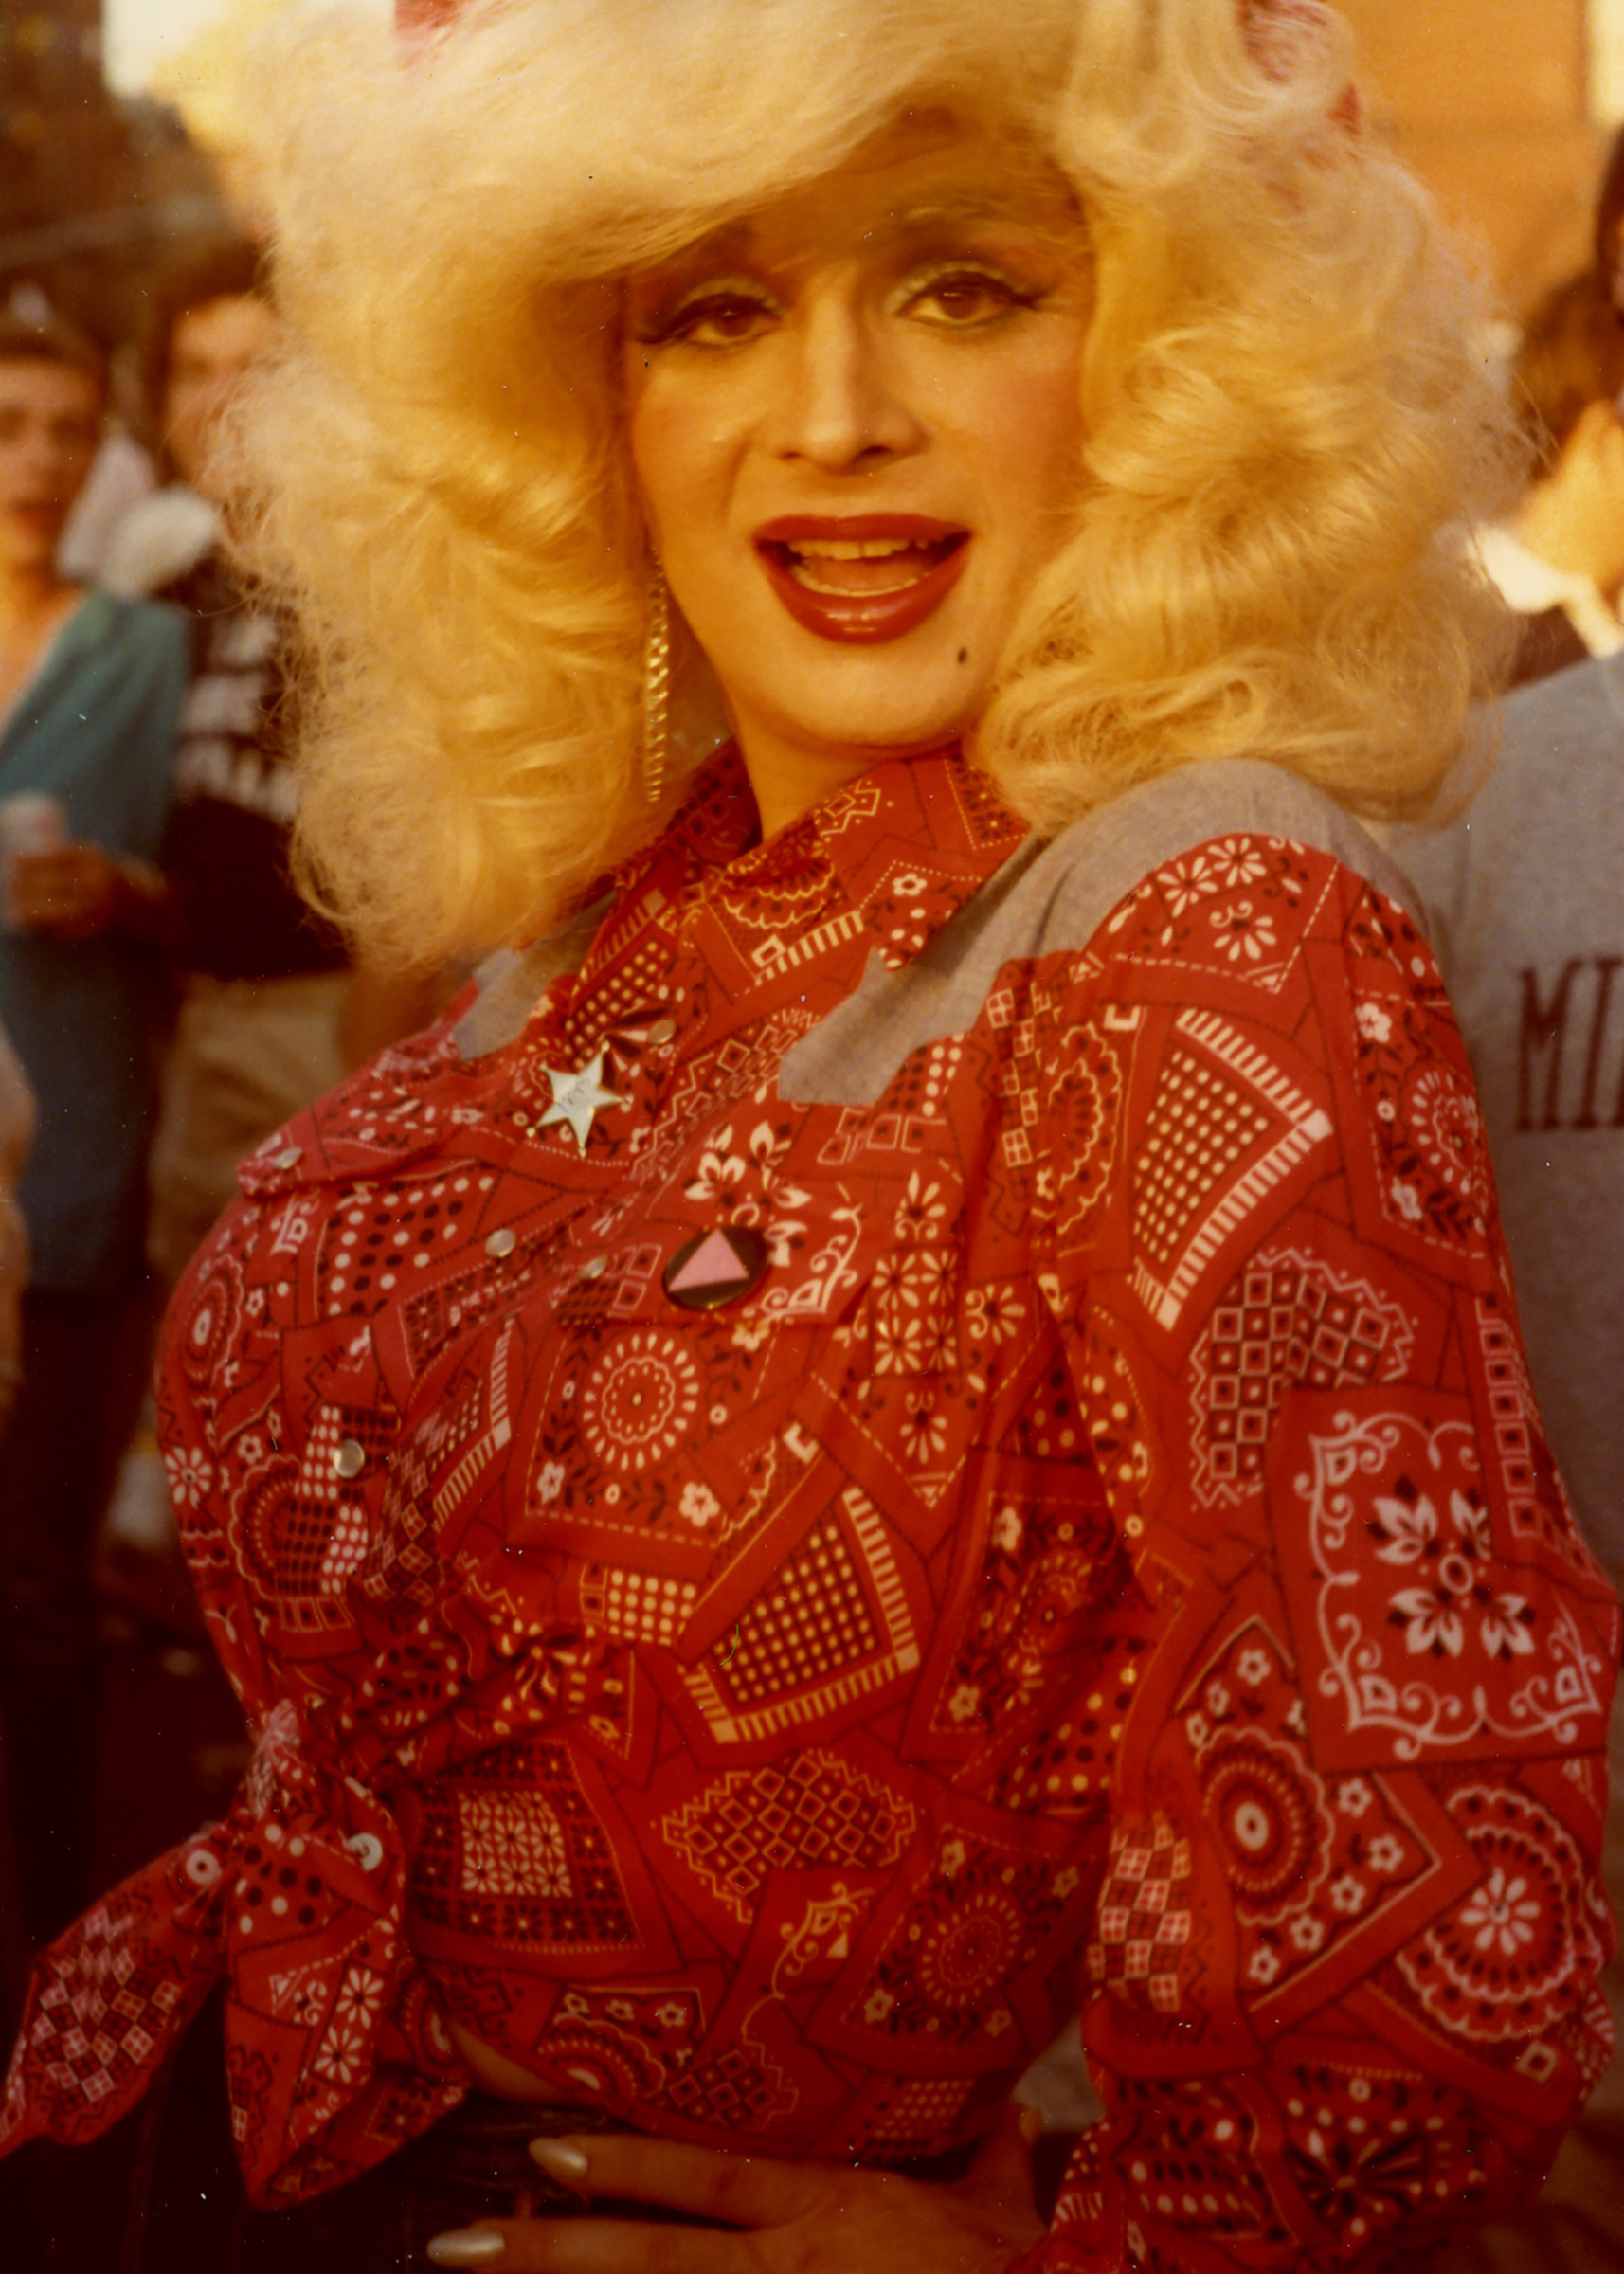 A drag performer dressed as Dolly Parton in 1978